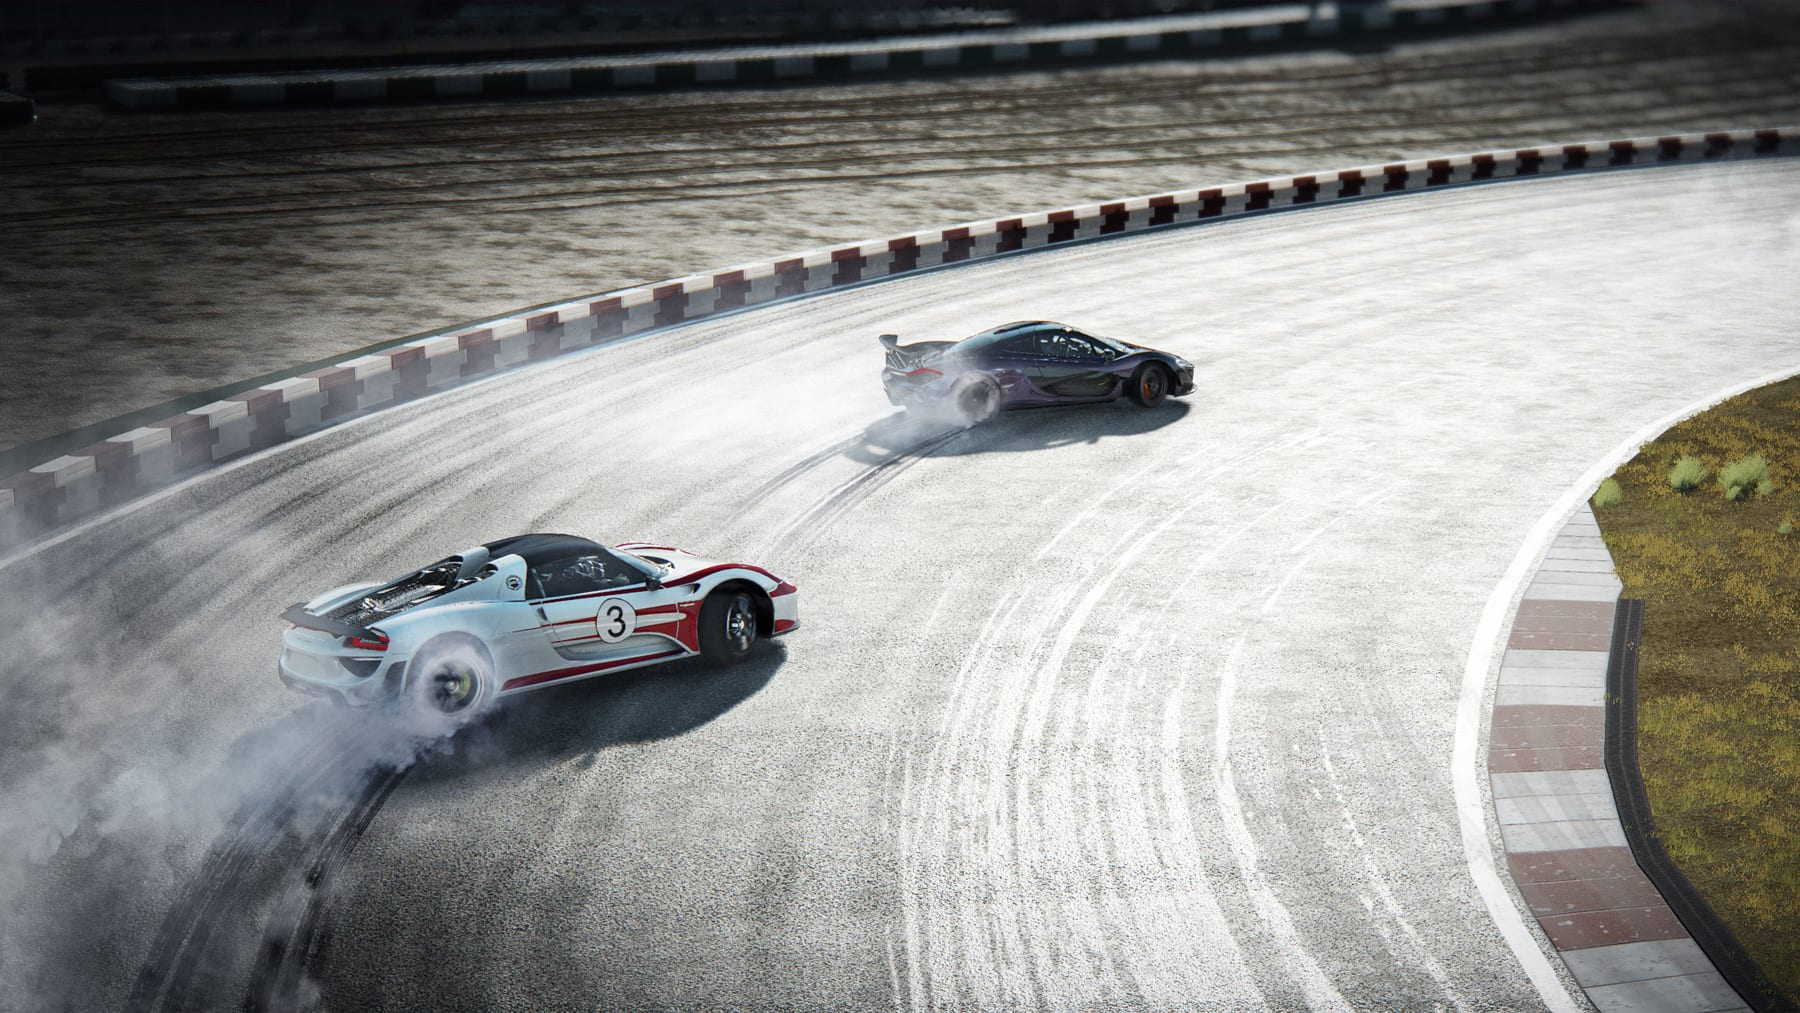 The Grand Tour Game' is a near-perfect mirror of the show